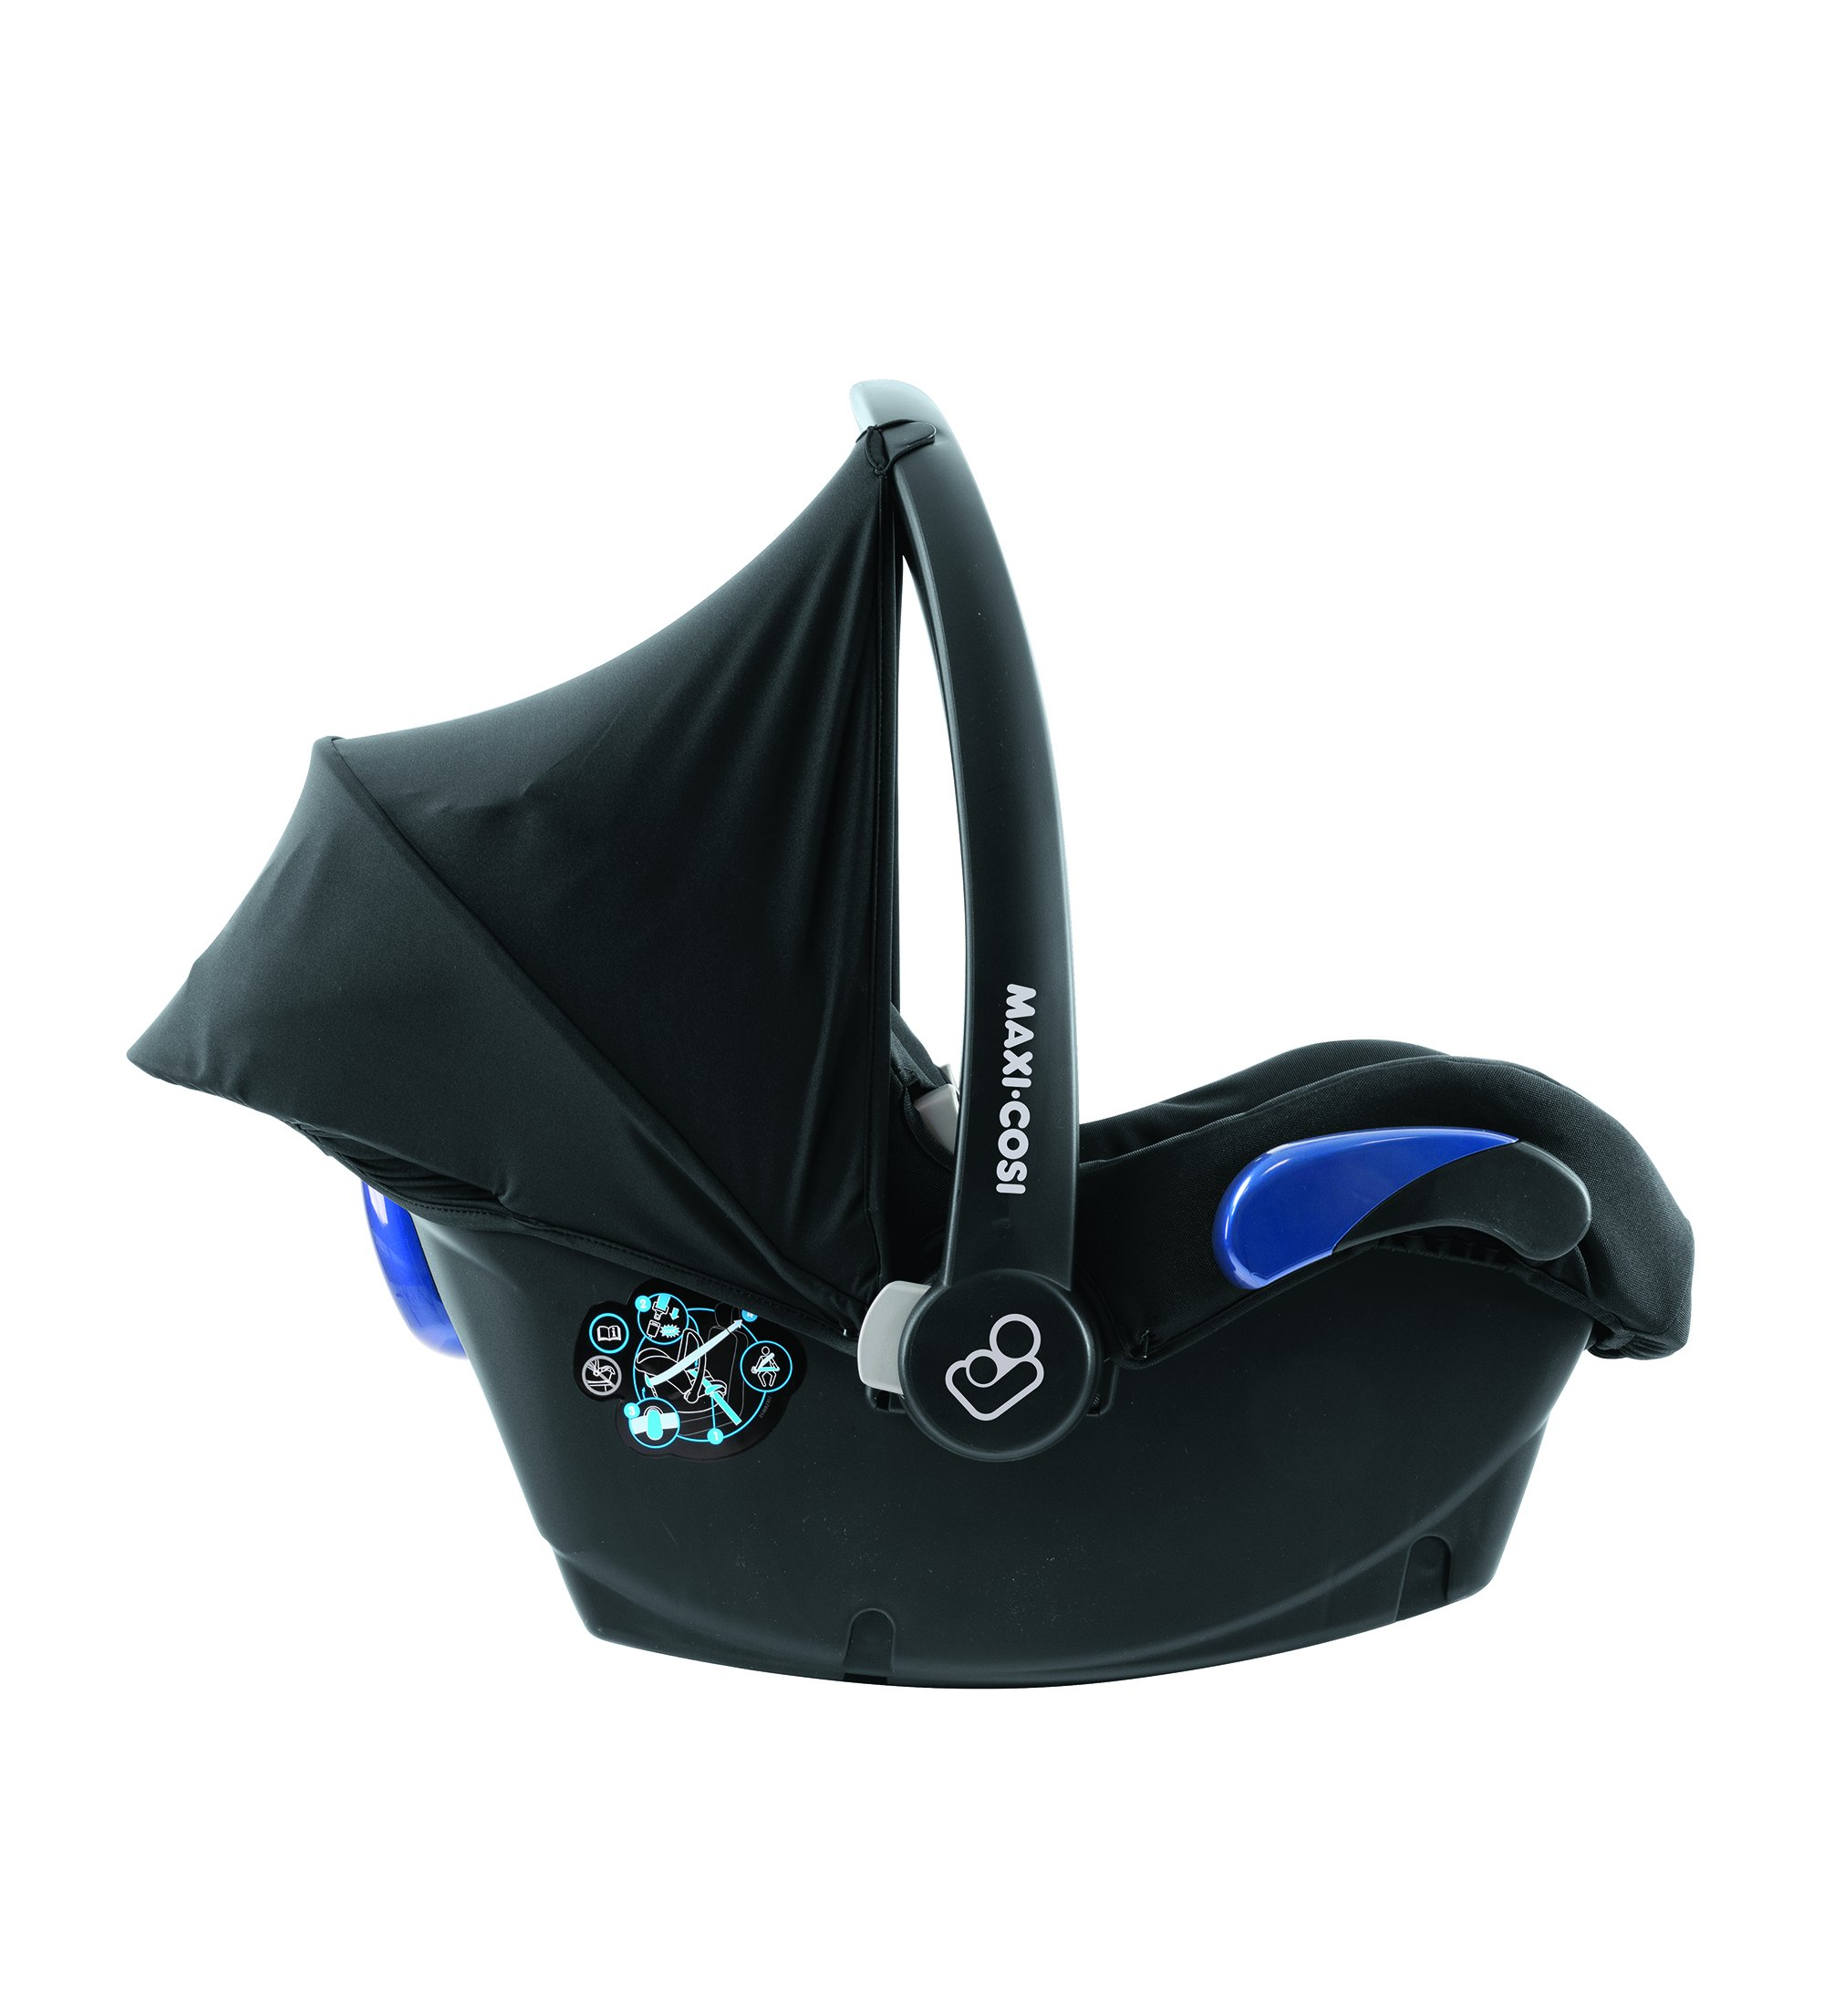 Maxi-Cosi Kinderautositz Citi Black Raven Maxi-Cosi Side protection system, guarantees optimal protection in the event of a side impact Lightweight, light weight and ergonomically shaped safety bar for use as carrying handle Practical travel system 10